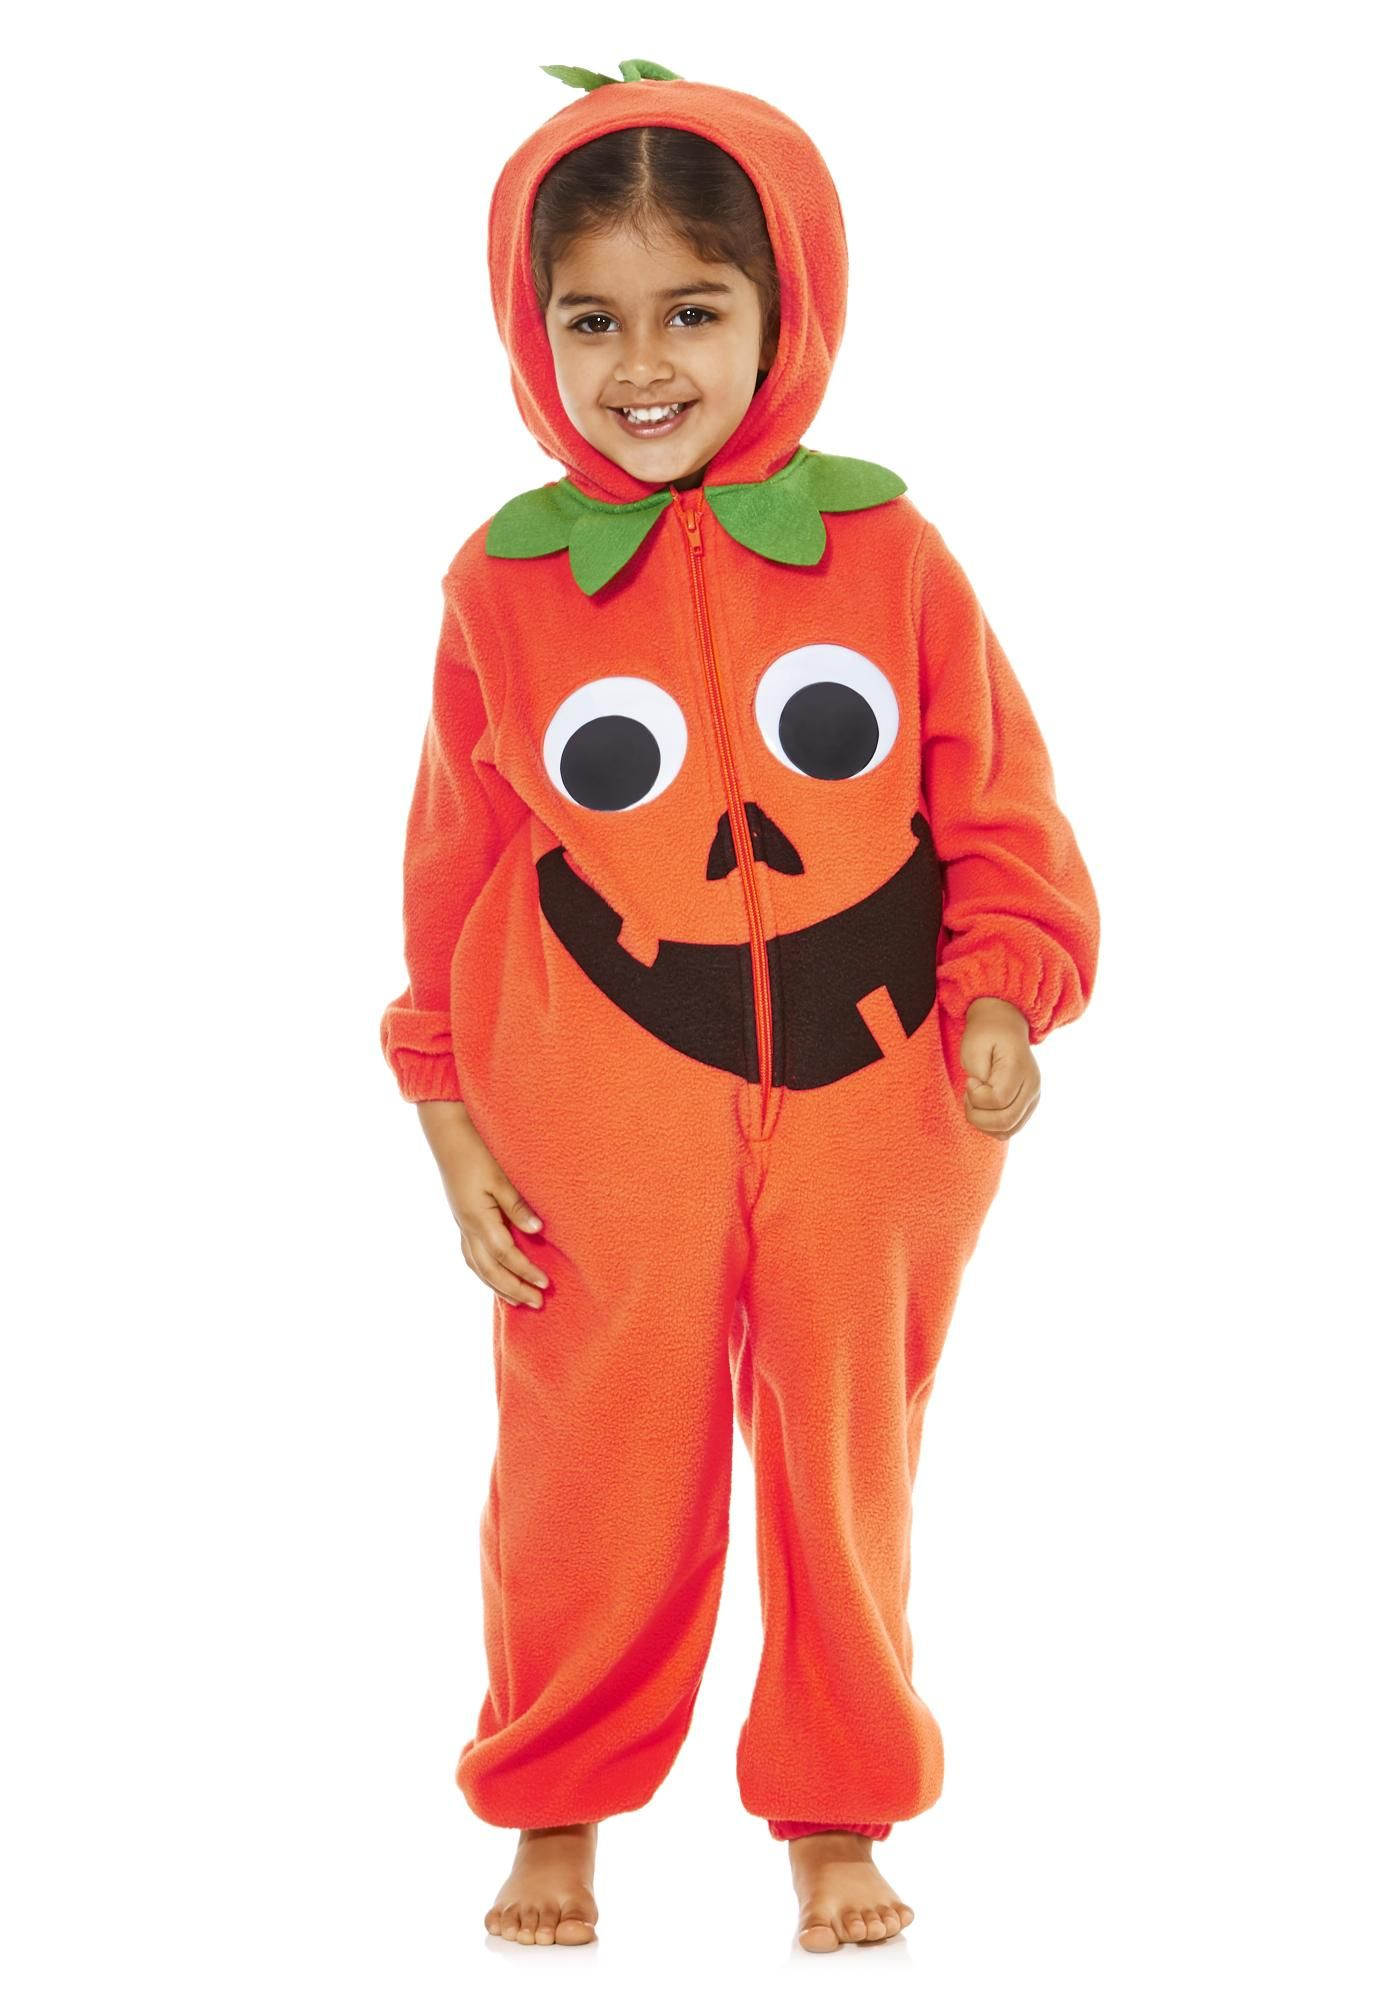 Tesco F&F Pumpkin Fleece Onesie DressUp Costume €10.50